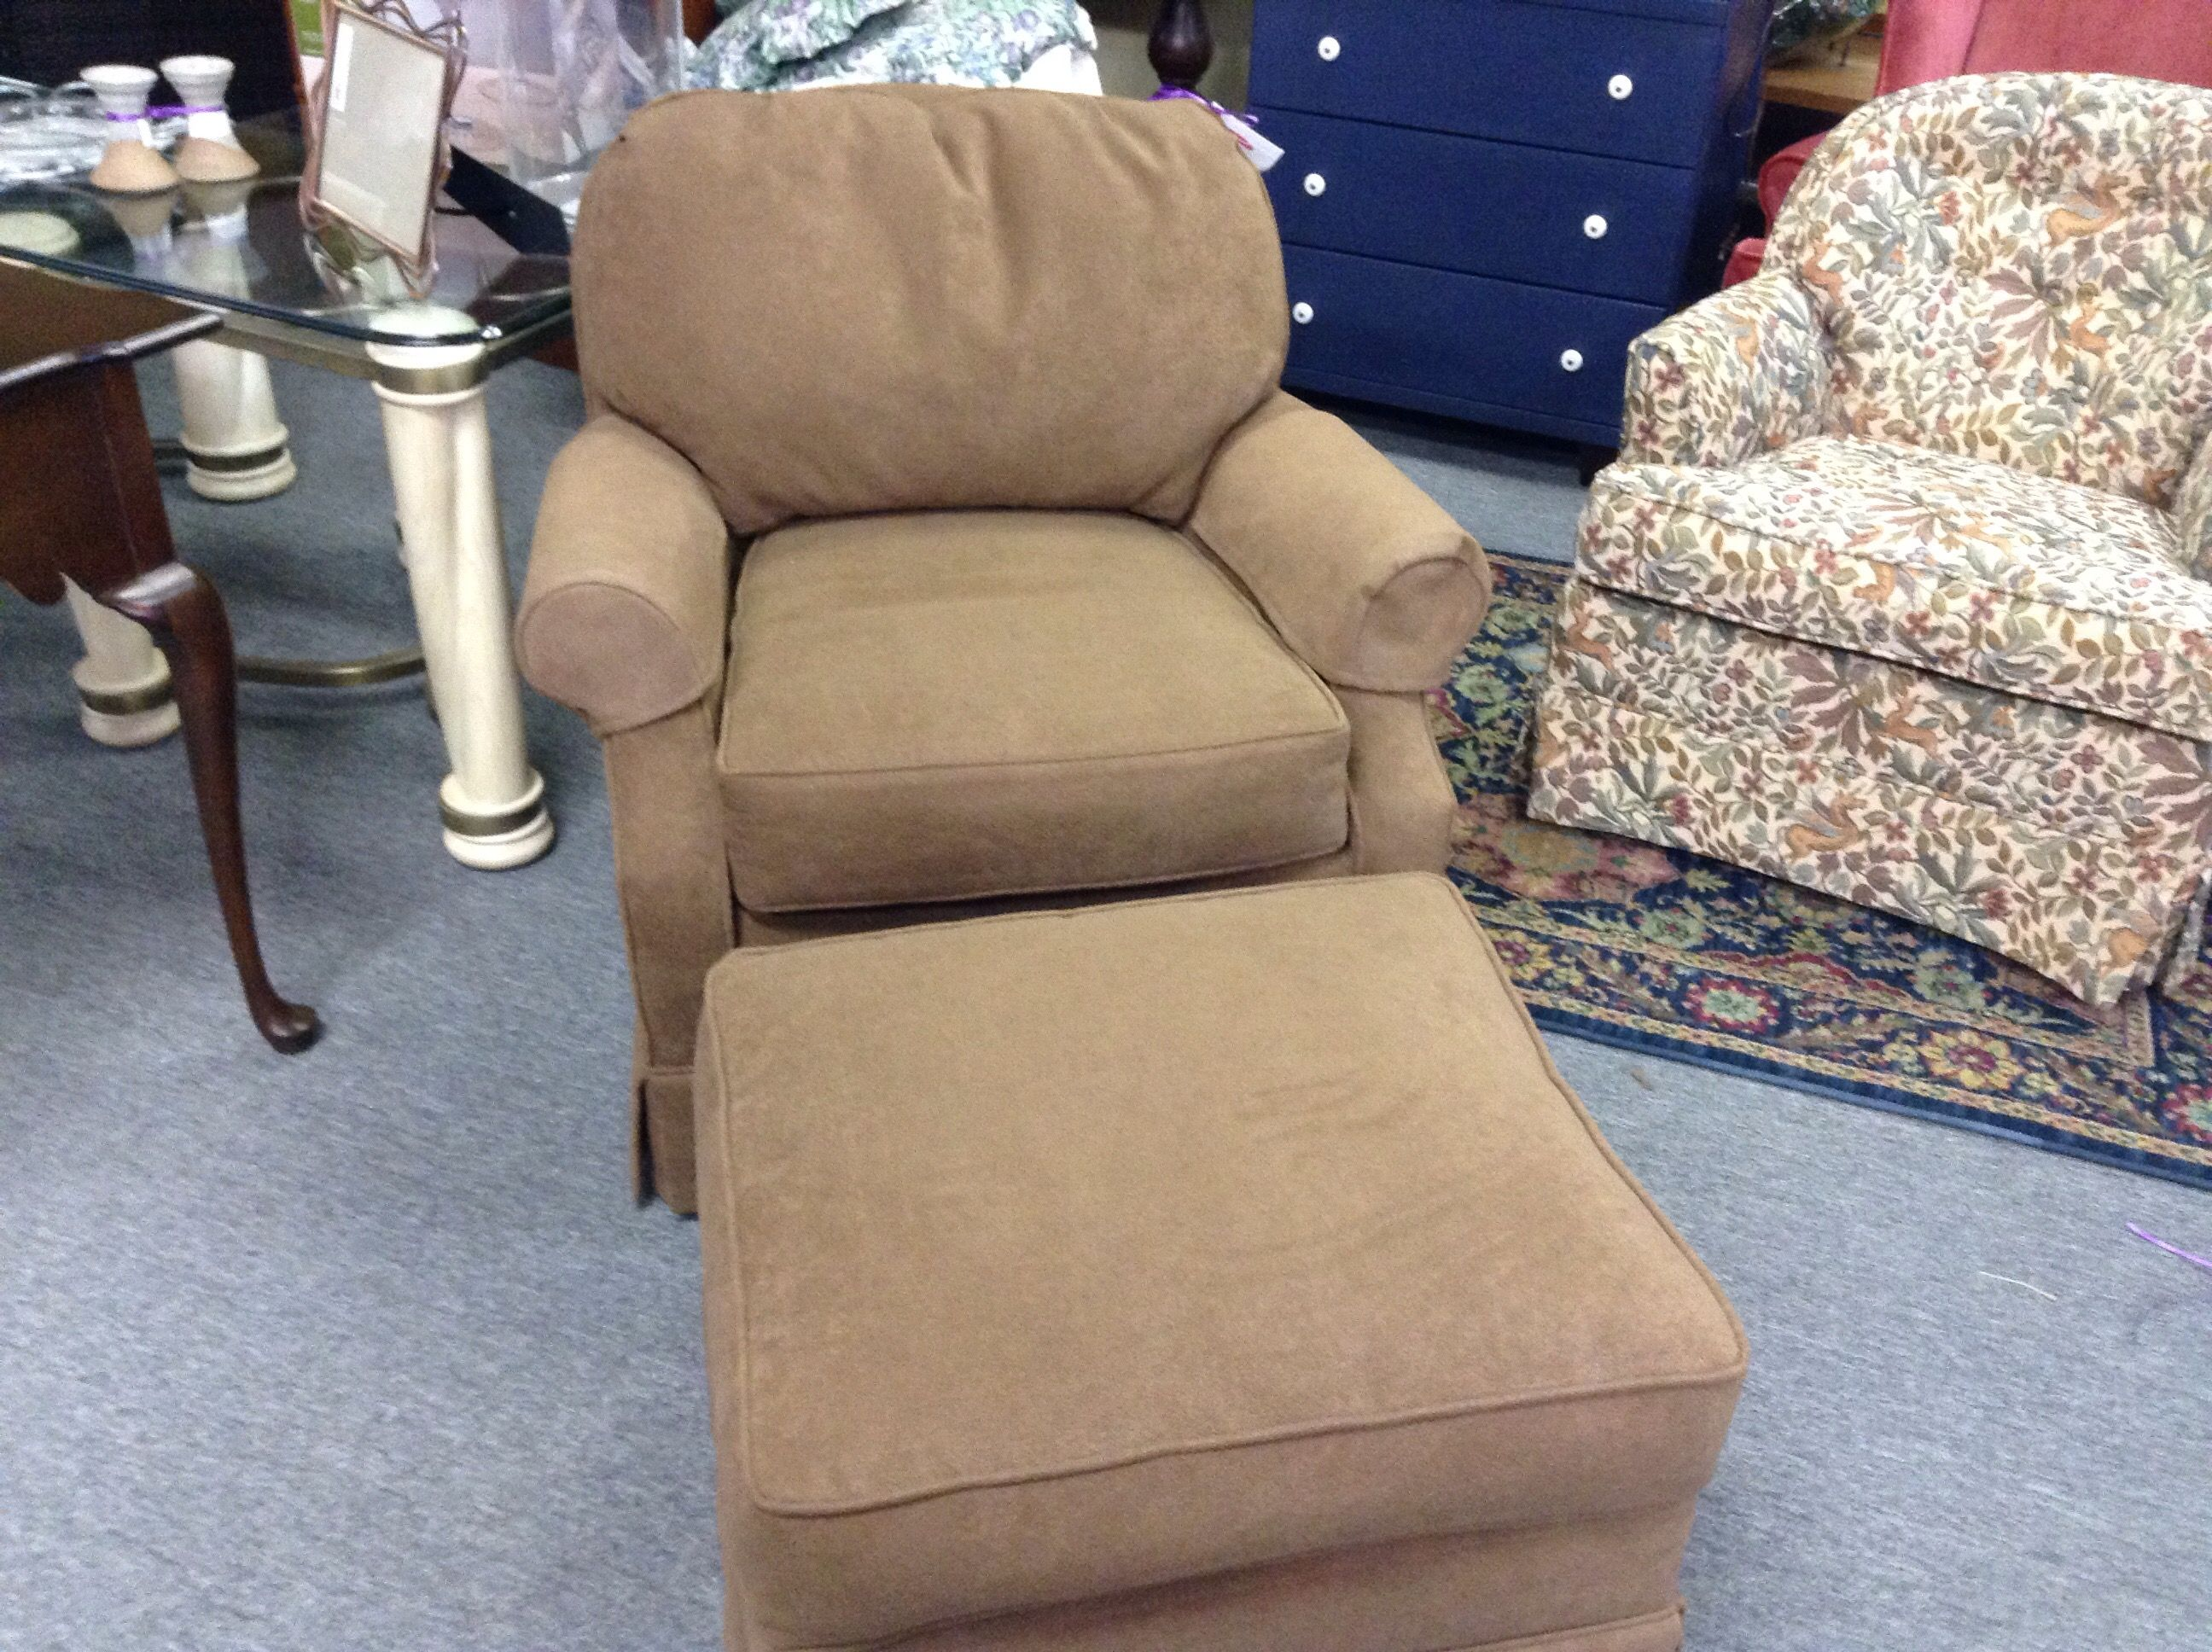 Easy Chair U0026 Ottoman   Fabric Chair And Matching Ottoman. Item 1498 12.